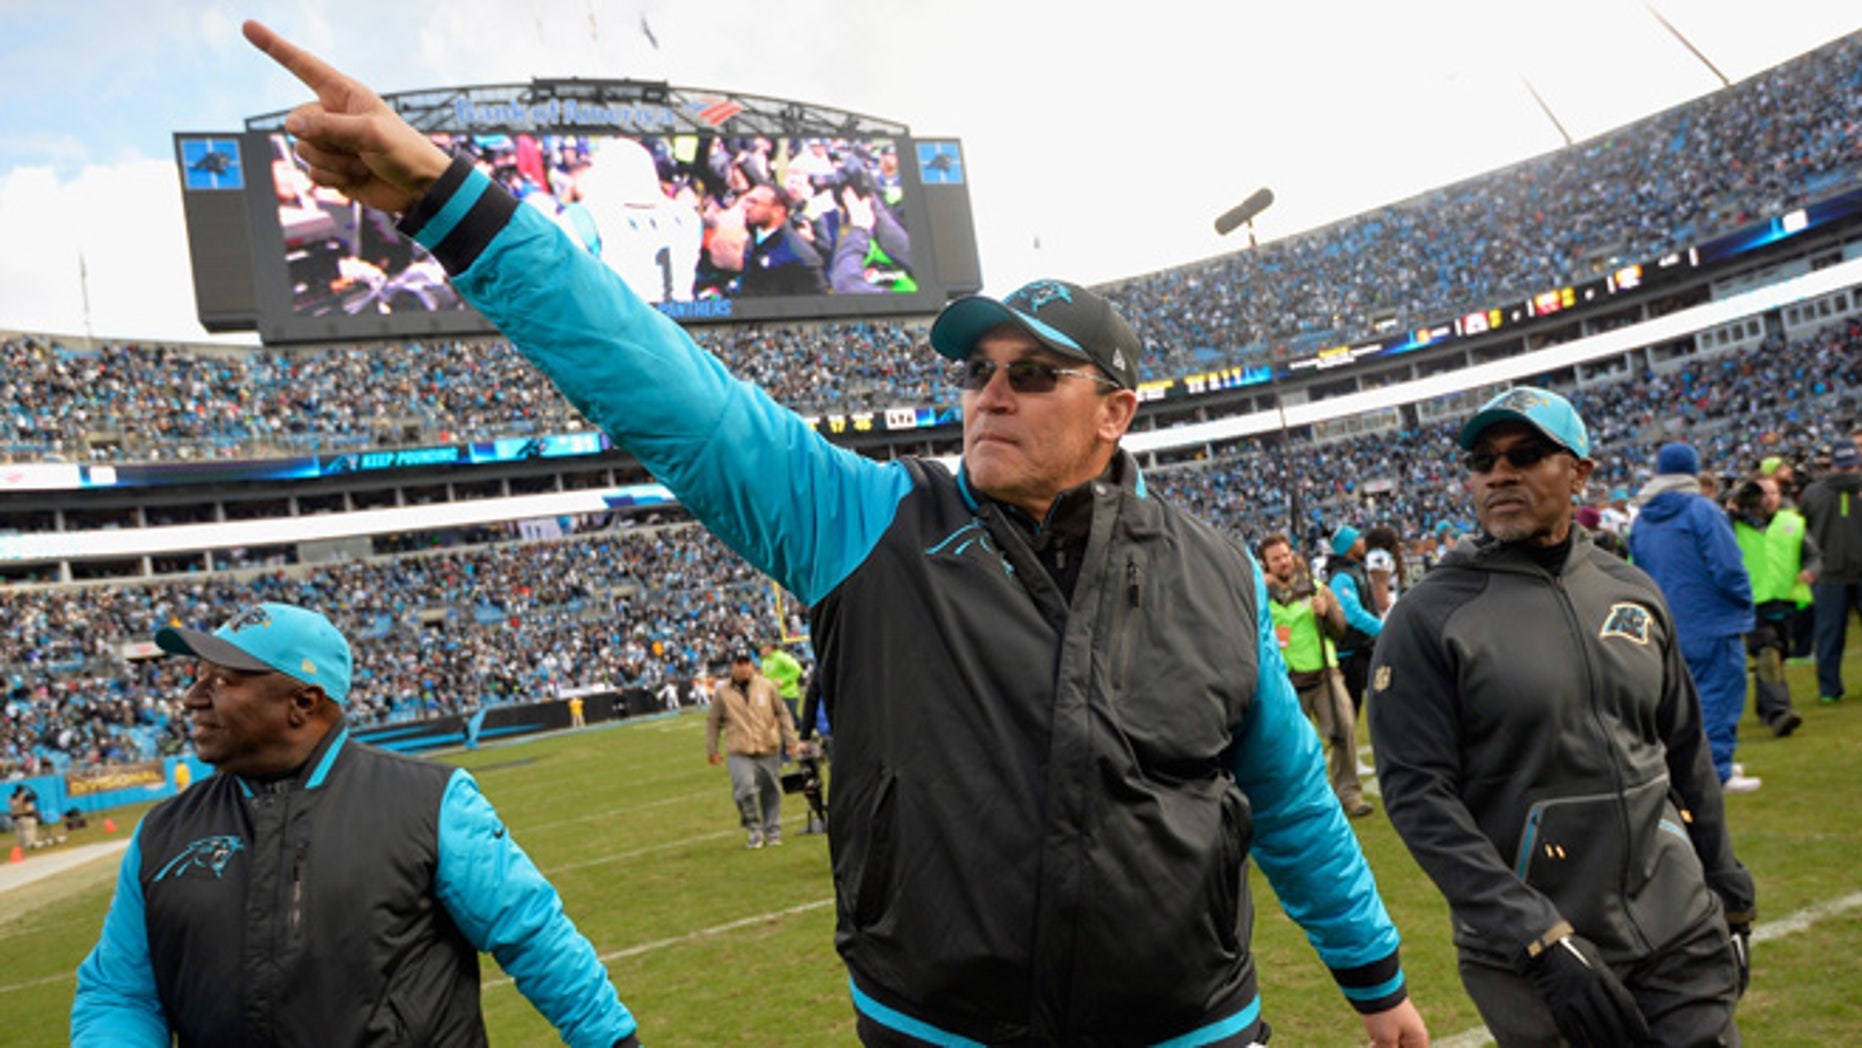 Head coach Ron Rivera of the Carolina Panthers salutes the crowd after defeating the Seattle Seahawks 31-24 at the NFC Divisional Playoff Game at Bank of America Stadium on January 17, 2016 in Charlotte, North Carolina.  (Photo by Grant Halverson/Getty Images)